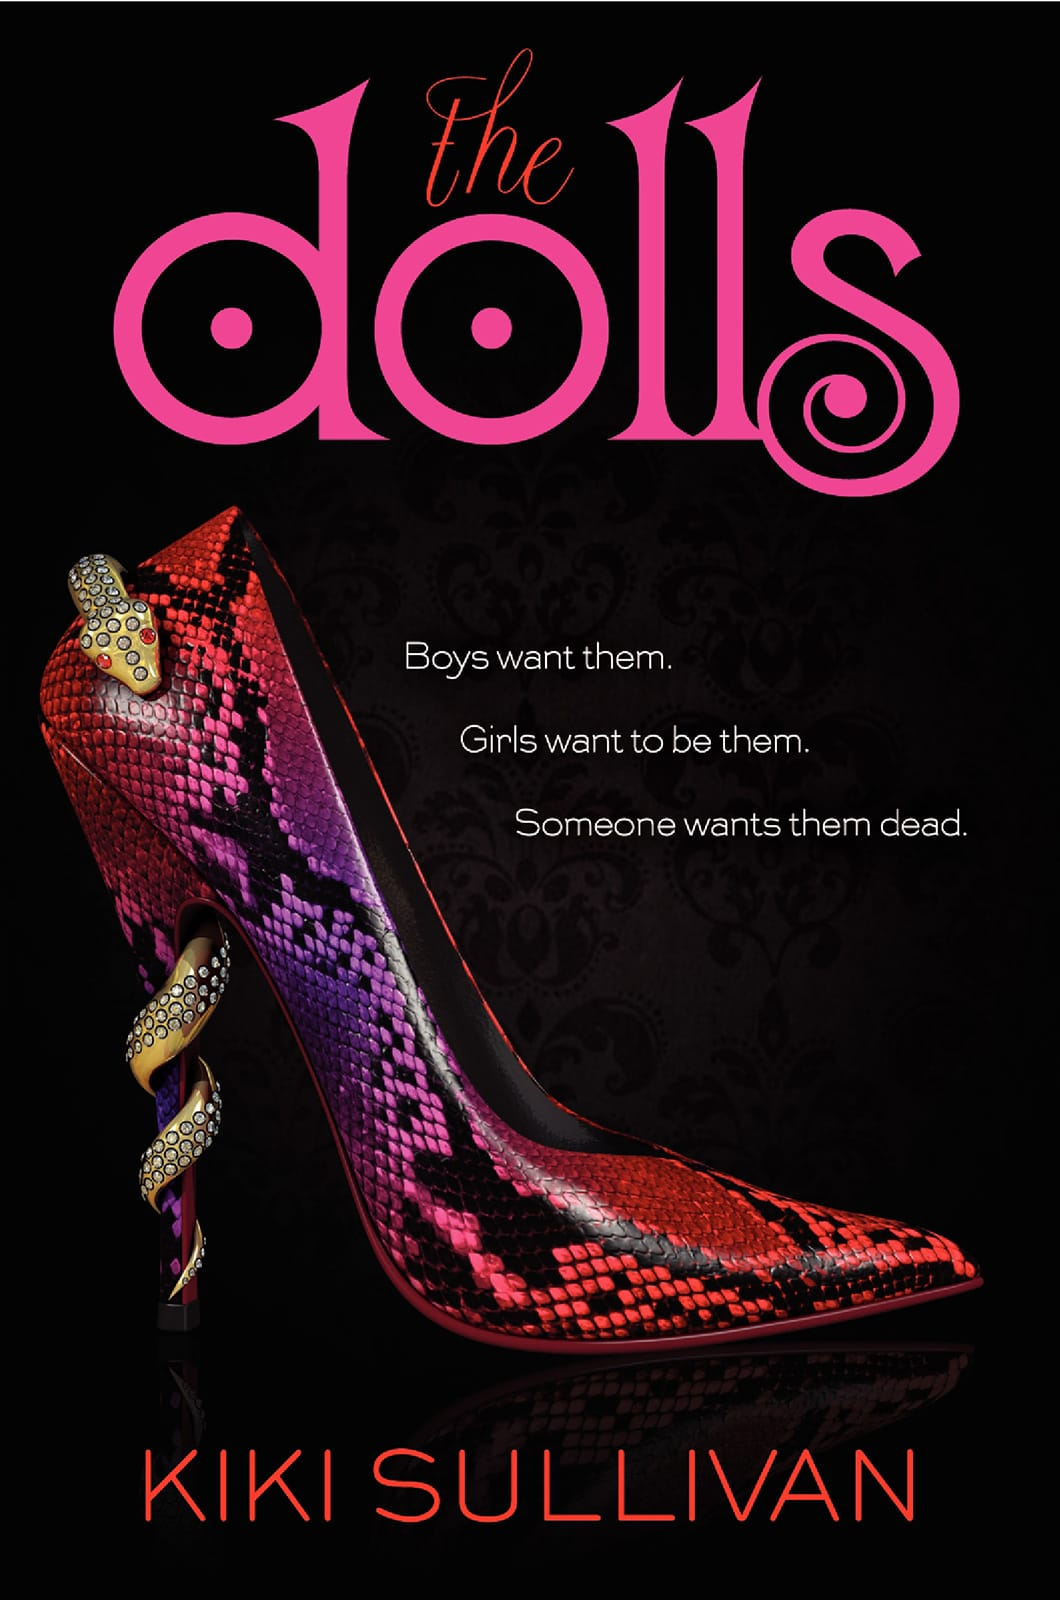 The Dolls by Kiki Sullivan - See more cover reveals on EpicReads.com!